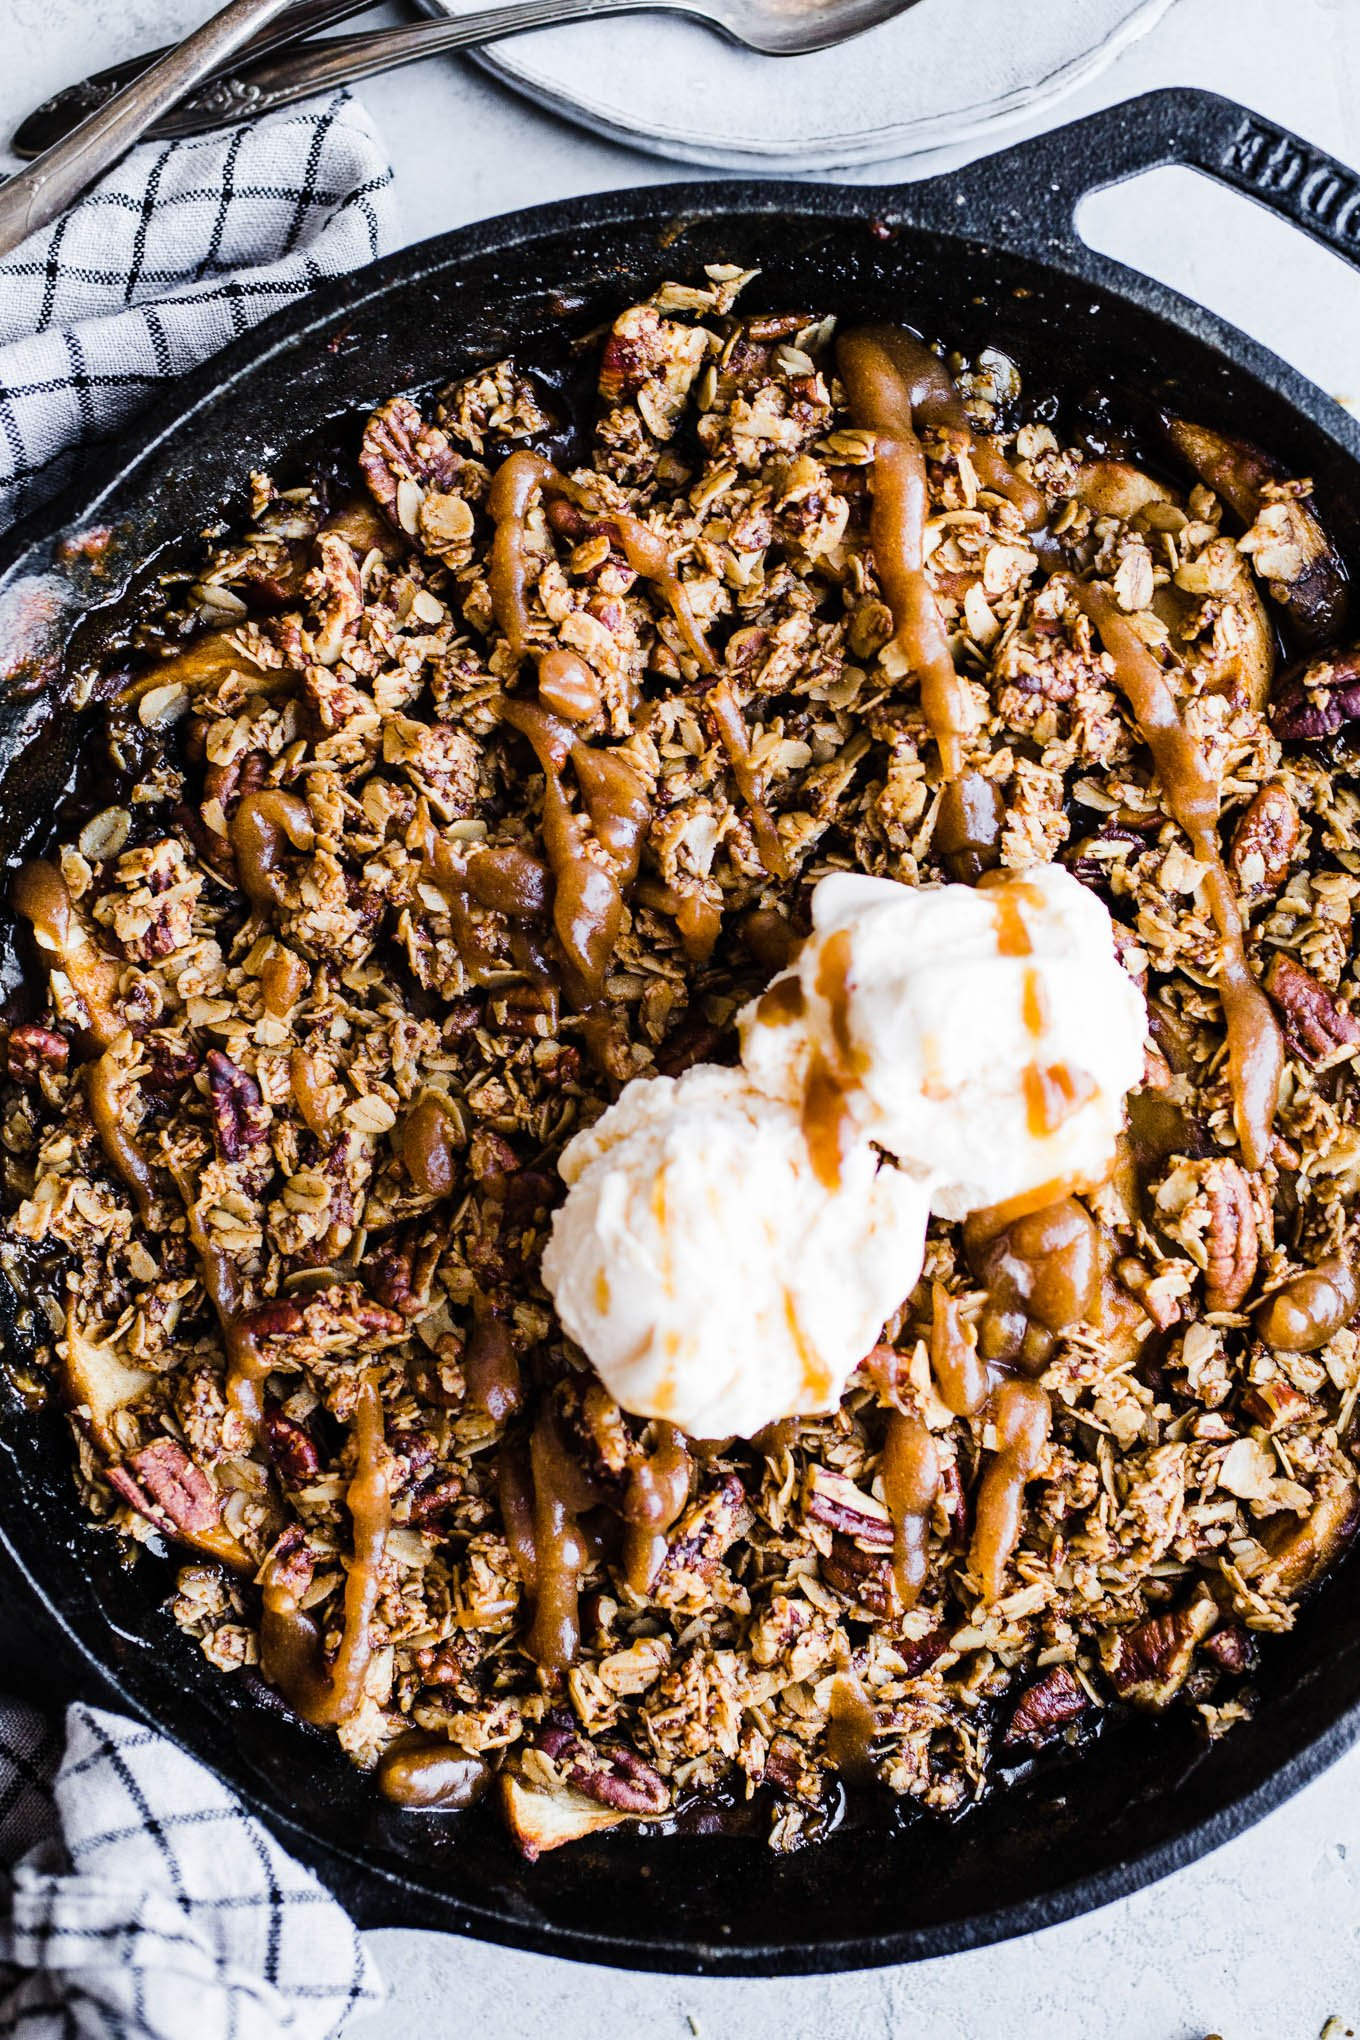 Caramel Apple Skillet Crisp